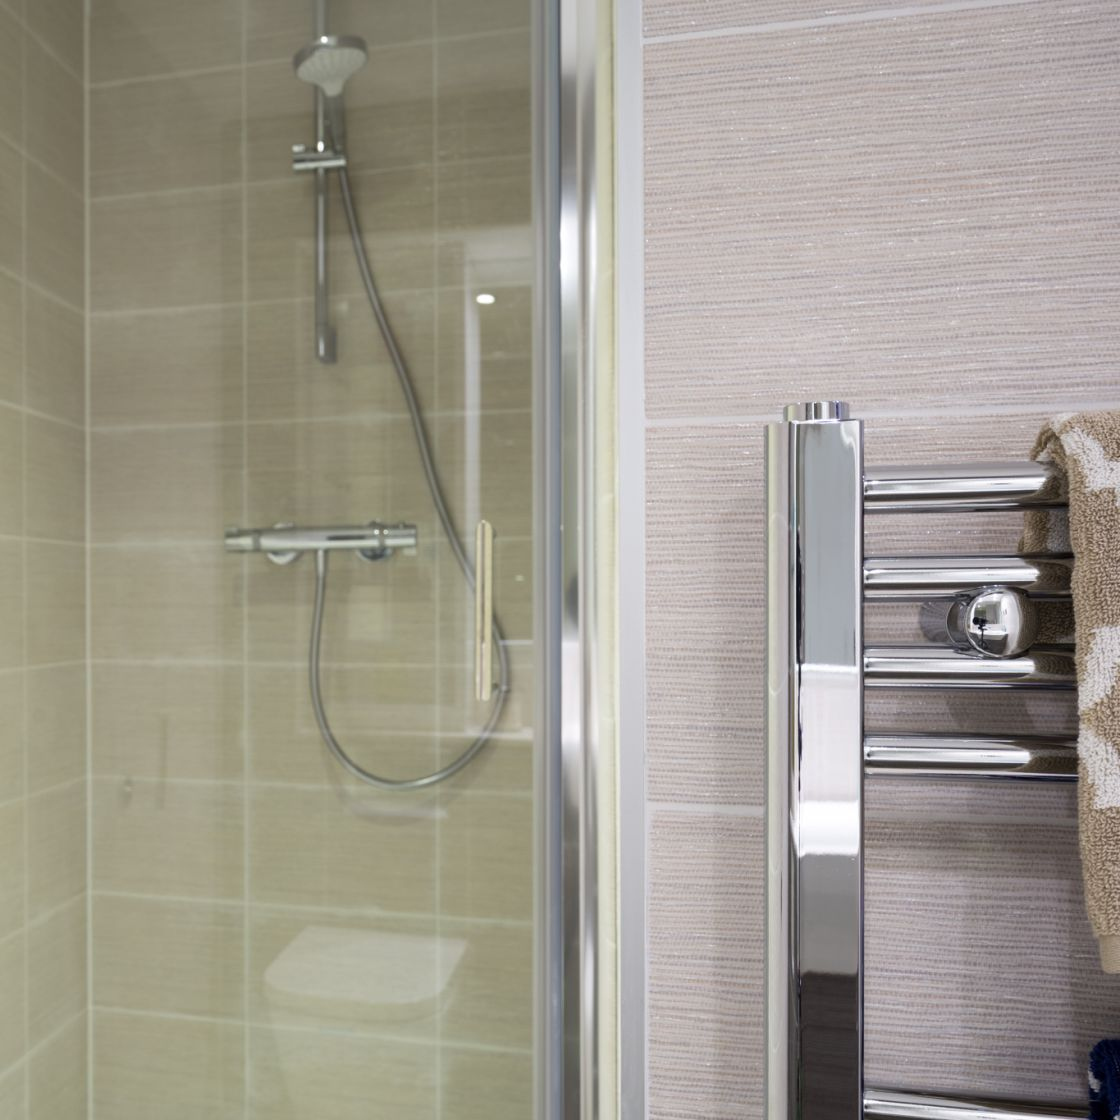 Neo Student Apartment in Leeds with En-suite Shower. IconInc, The Glassworks